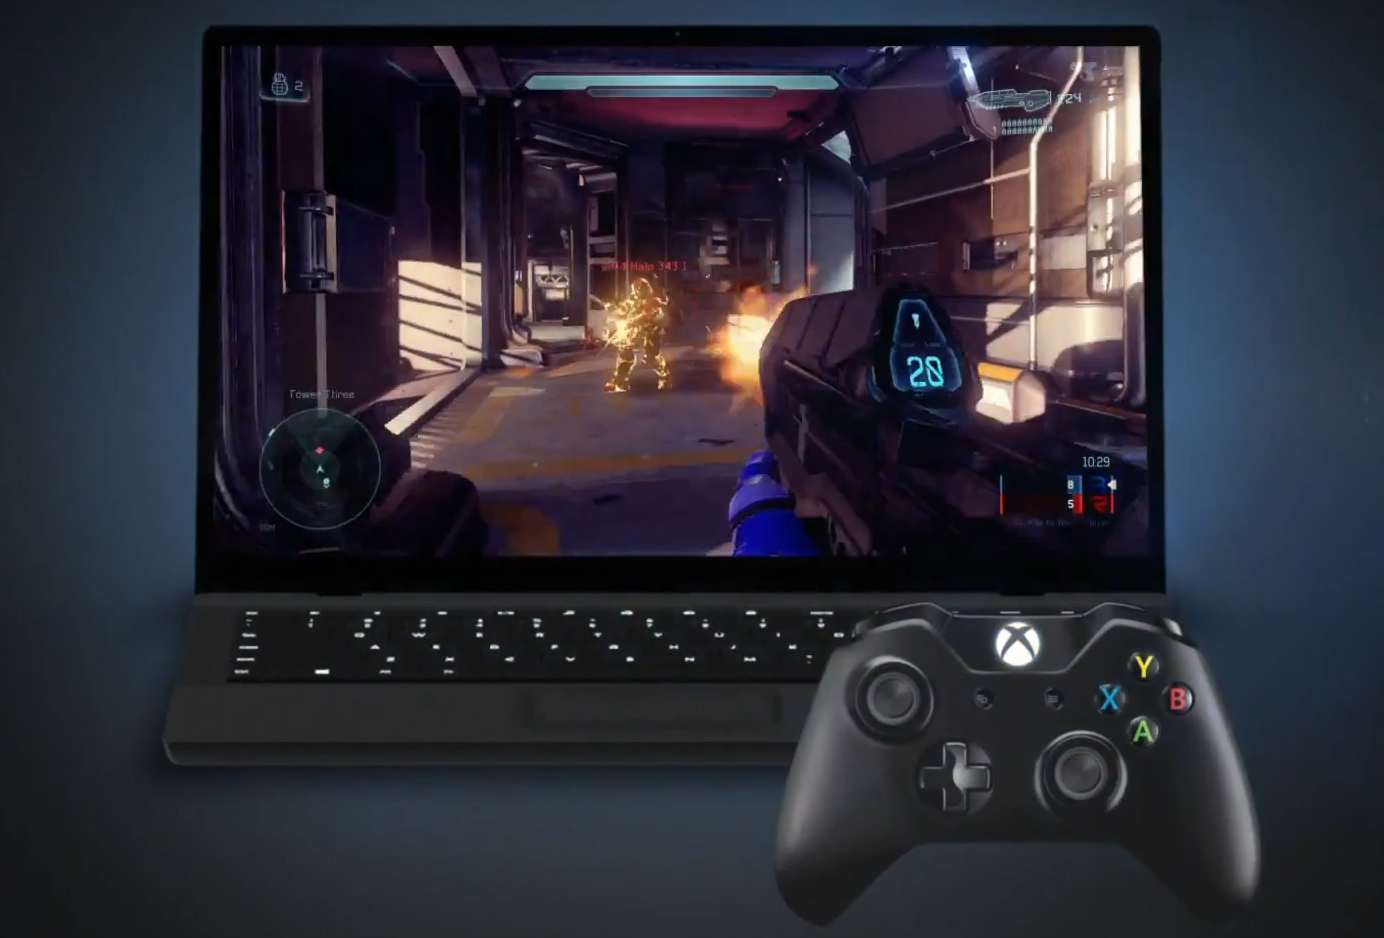 Windows 10's Xbox App: More about extending a console than